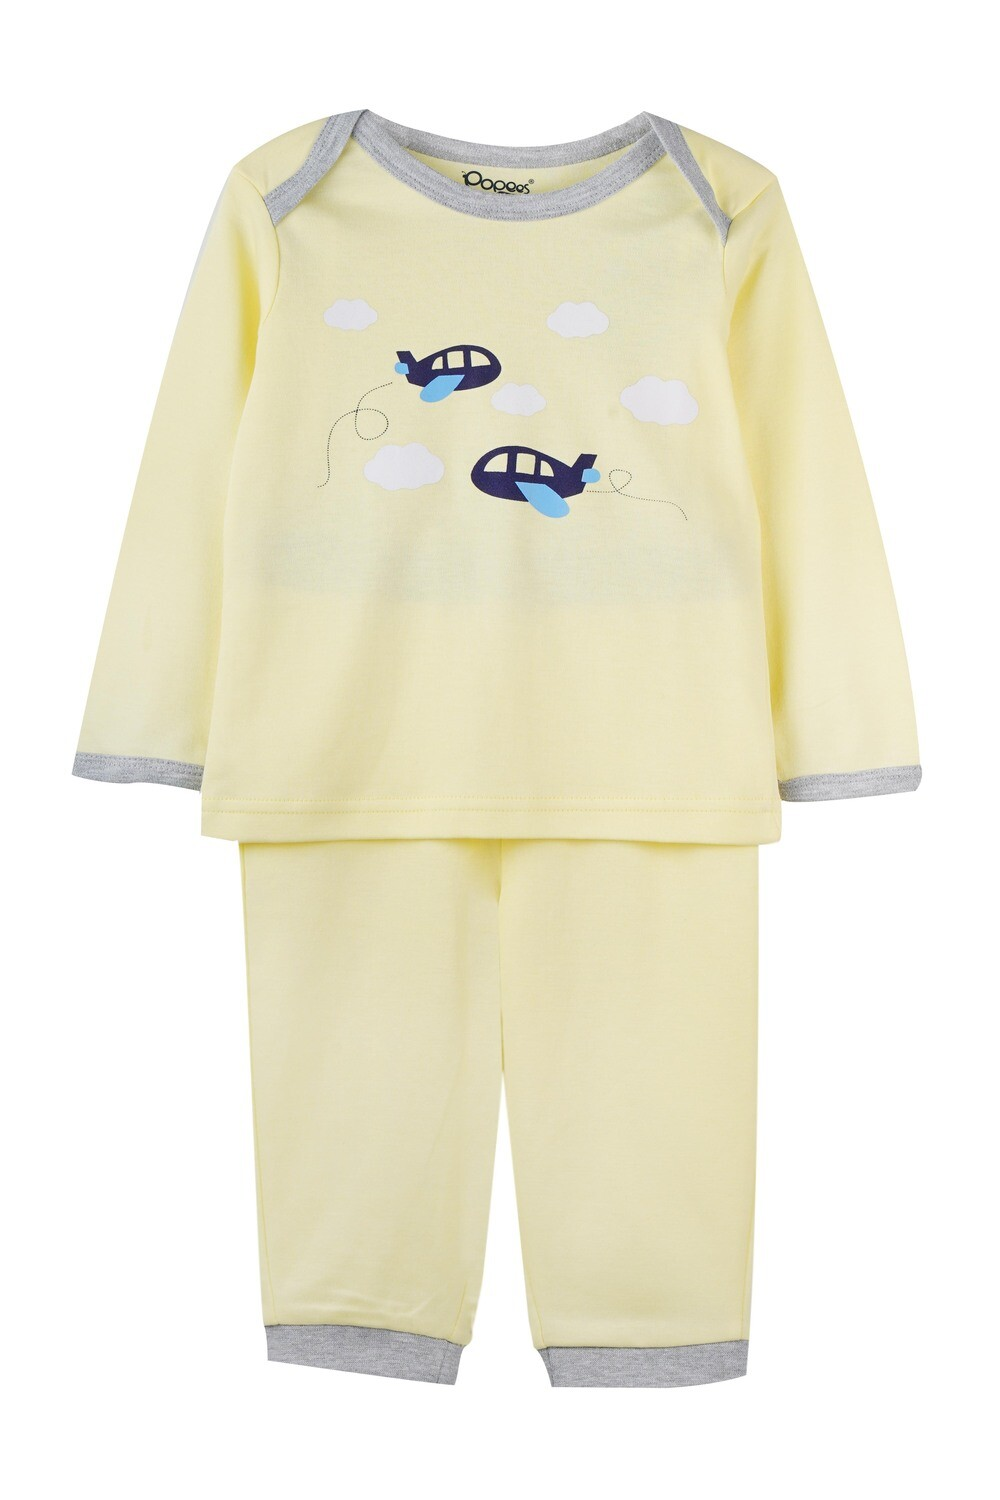 KEDRICK WAX YELLOW Full Sleeve Top and Pant for Baby Boys